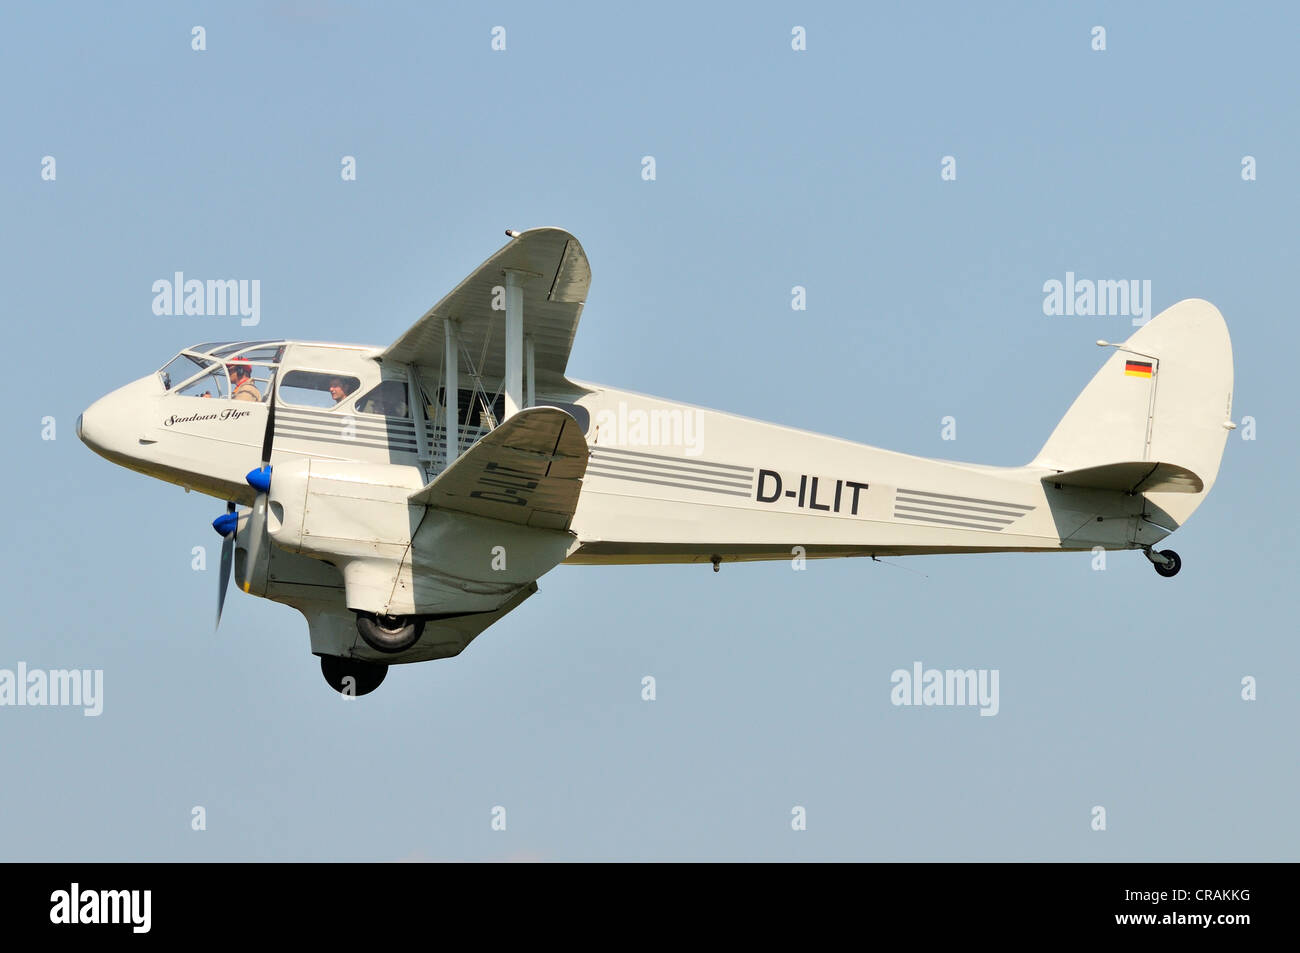 British short-haul passenger airliner, de Havilland Dragon Rapide, first flight in 1934, Europe's largest meeting - Stock Image